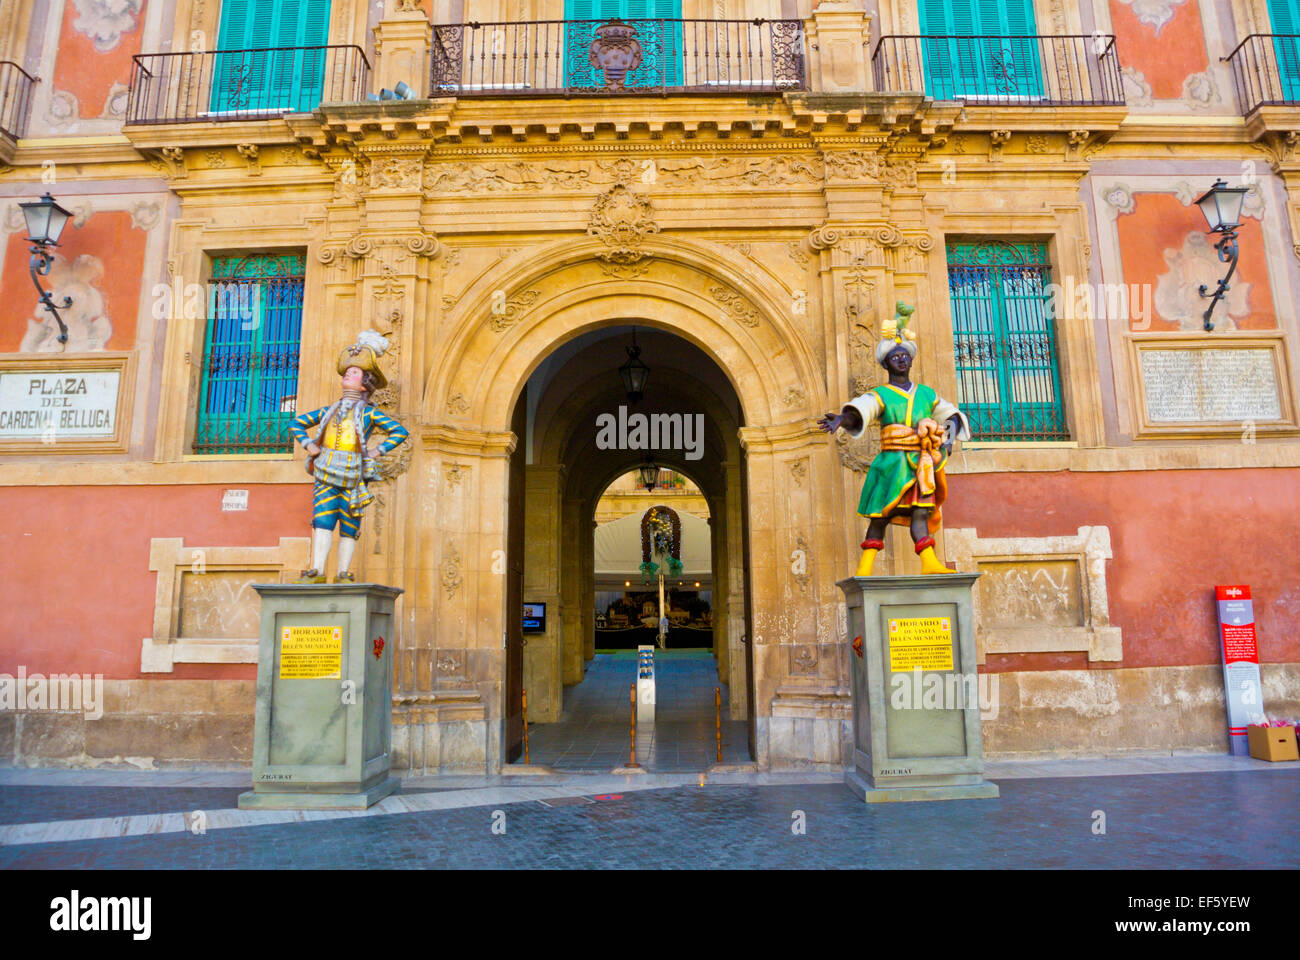 Palacio Episcopal, housing art gallery and exhibition spaces, Plaza del Cardenal Belluga square, old town, Murcia, Stock Photo